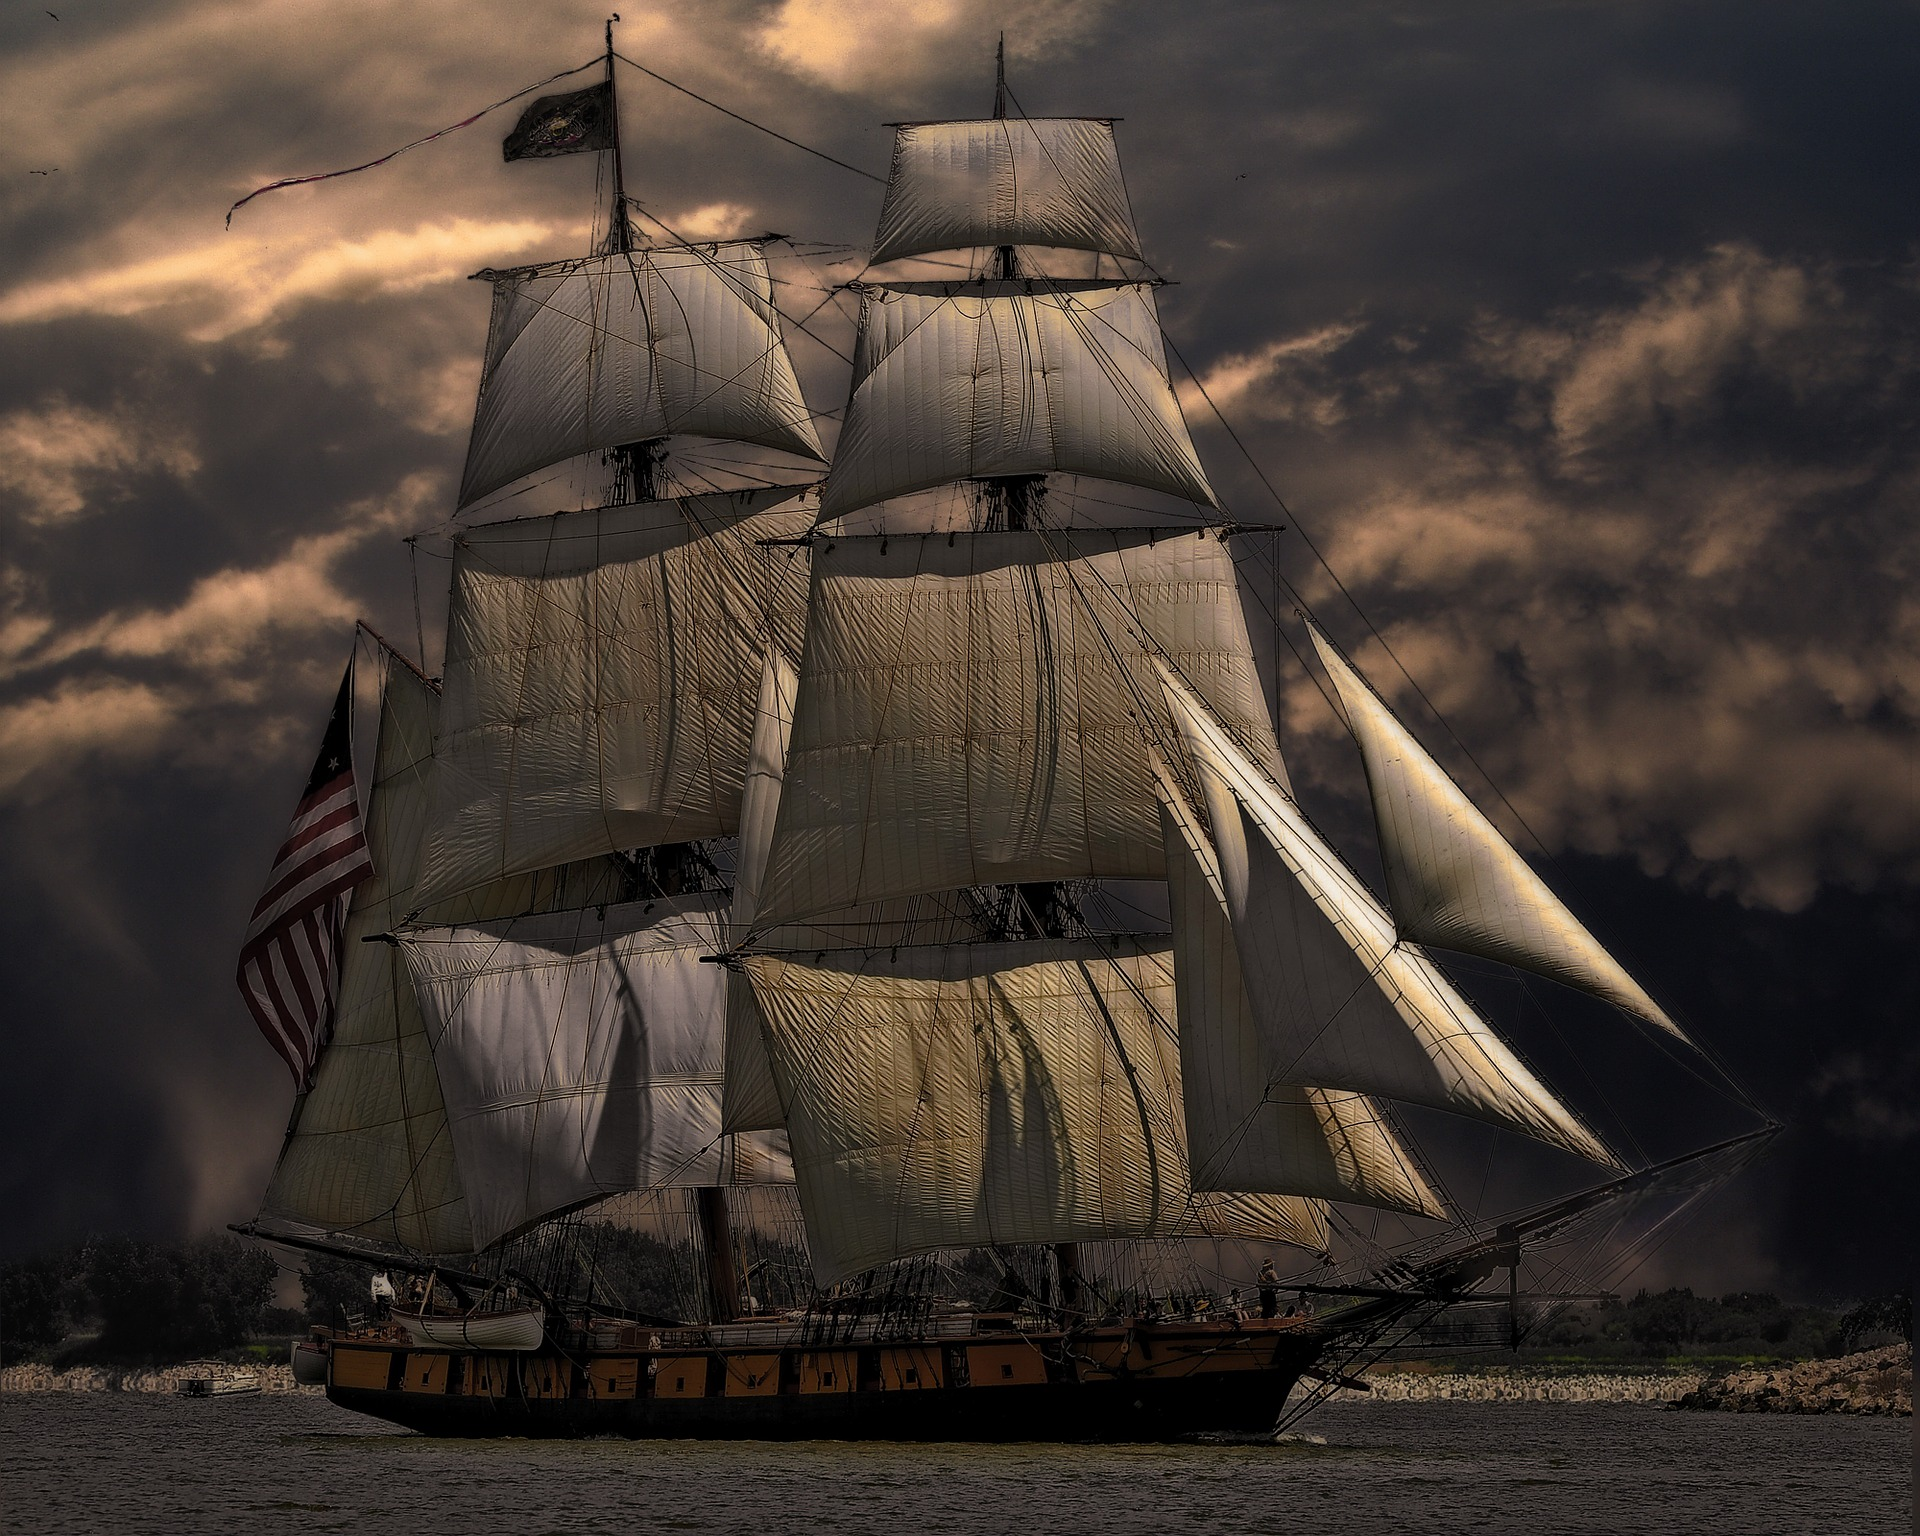 Tall Ship with Sails During Stormy Weather